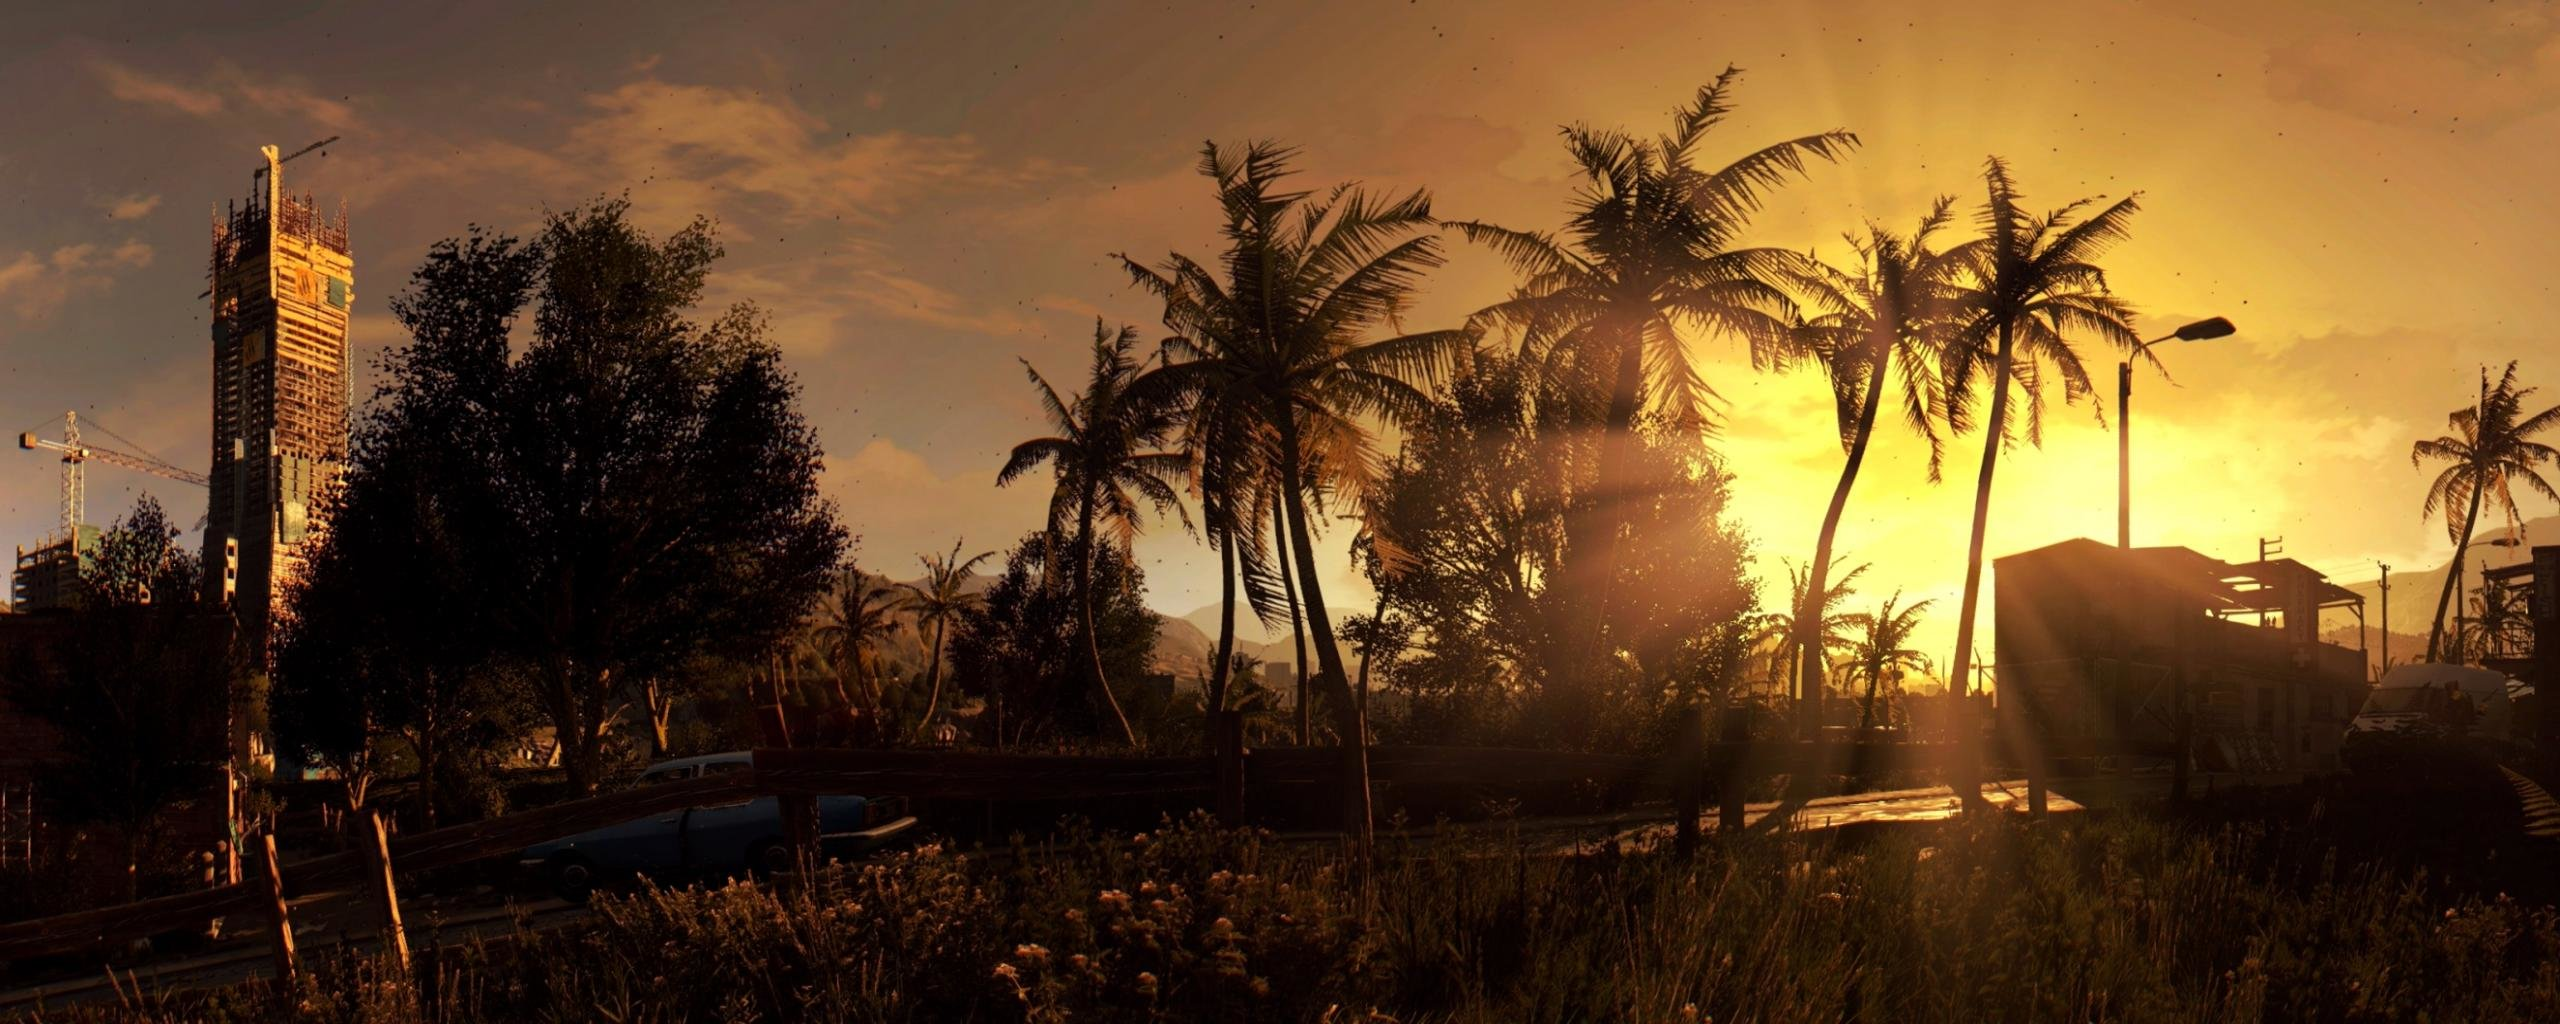 Dual Monitor Dying Light Wallpapers, HD Backgrounds